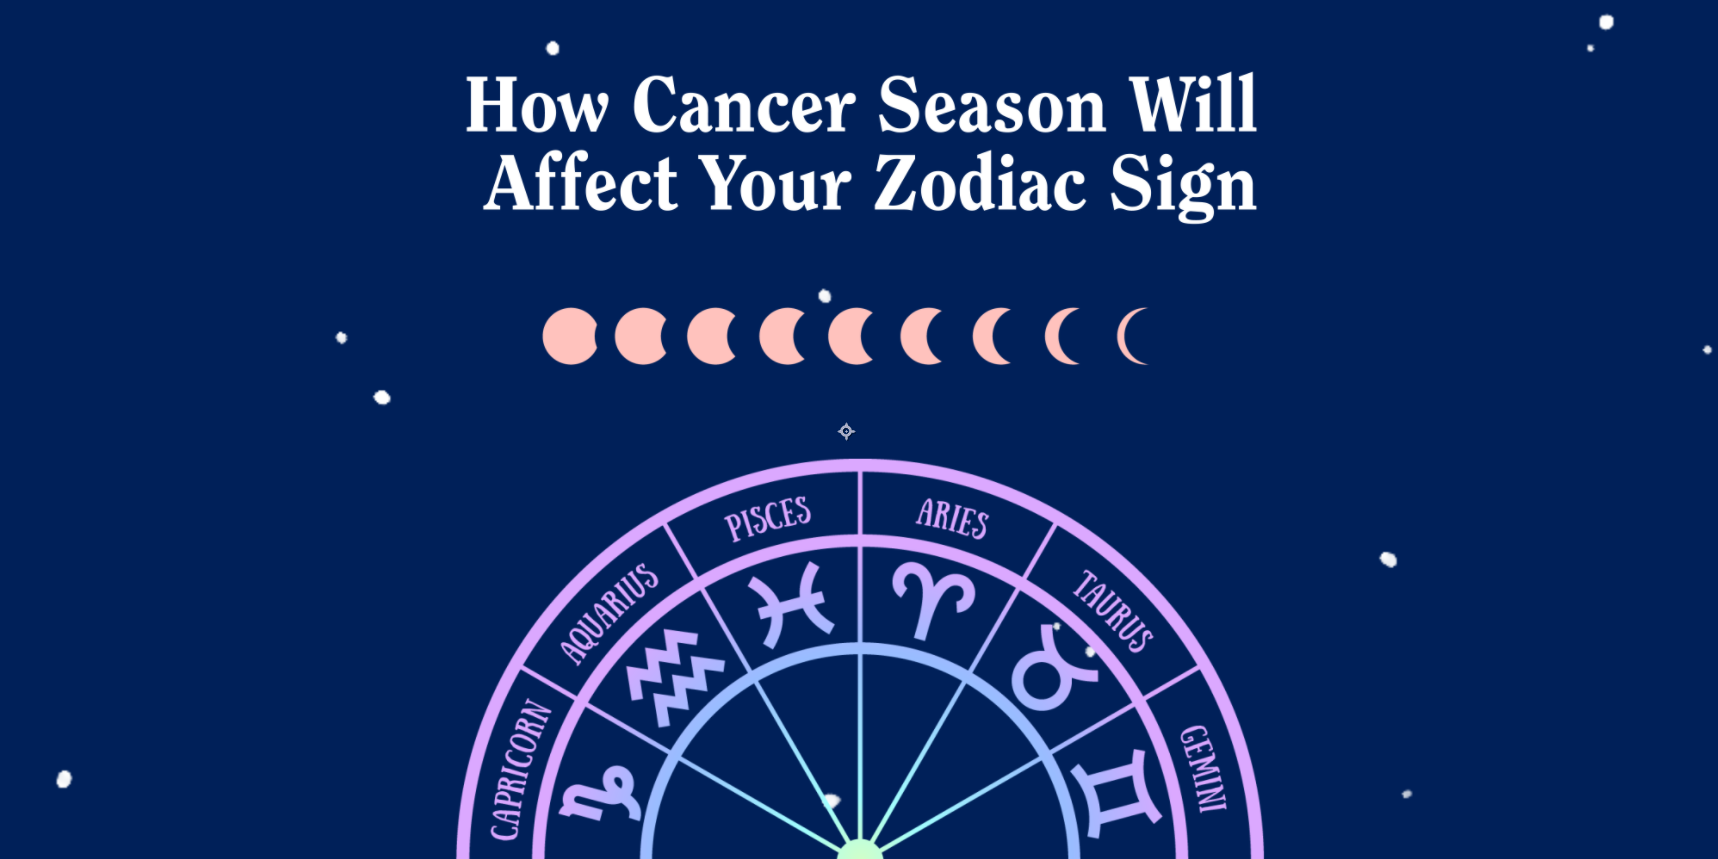 Cancer Season Is Here - Here's How Each Zodiac Sign Will Be